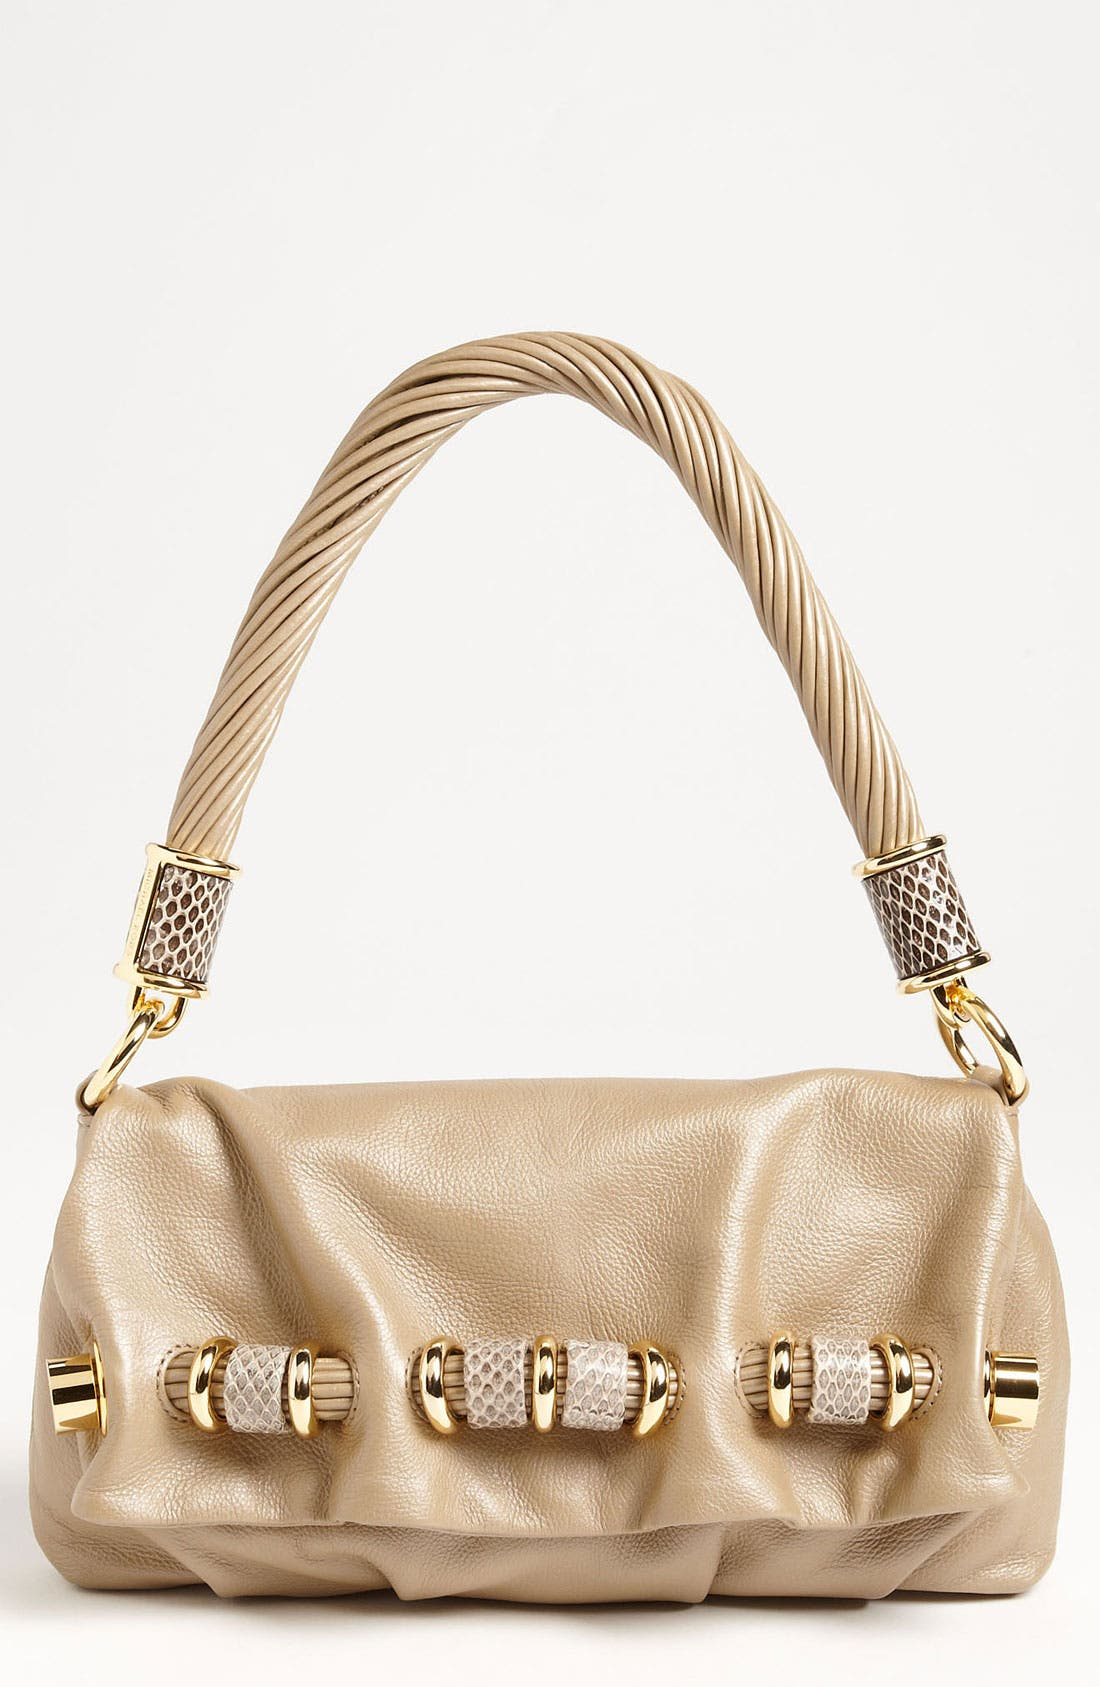 Main Image - Michael Kors 'Tonne - Small' Calfskin Leather Shoulder Bag